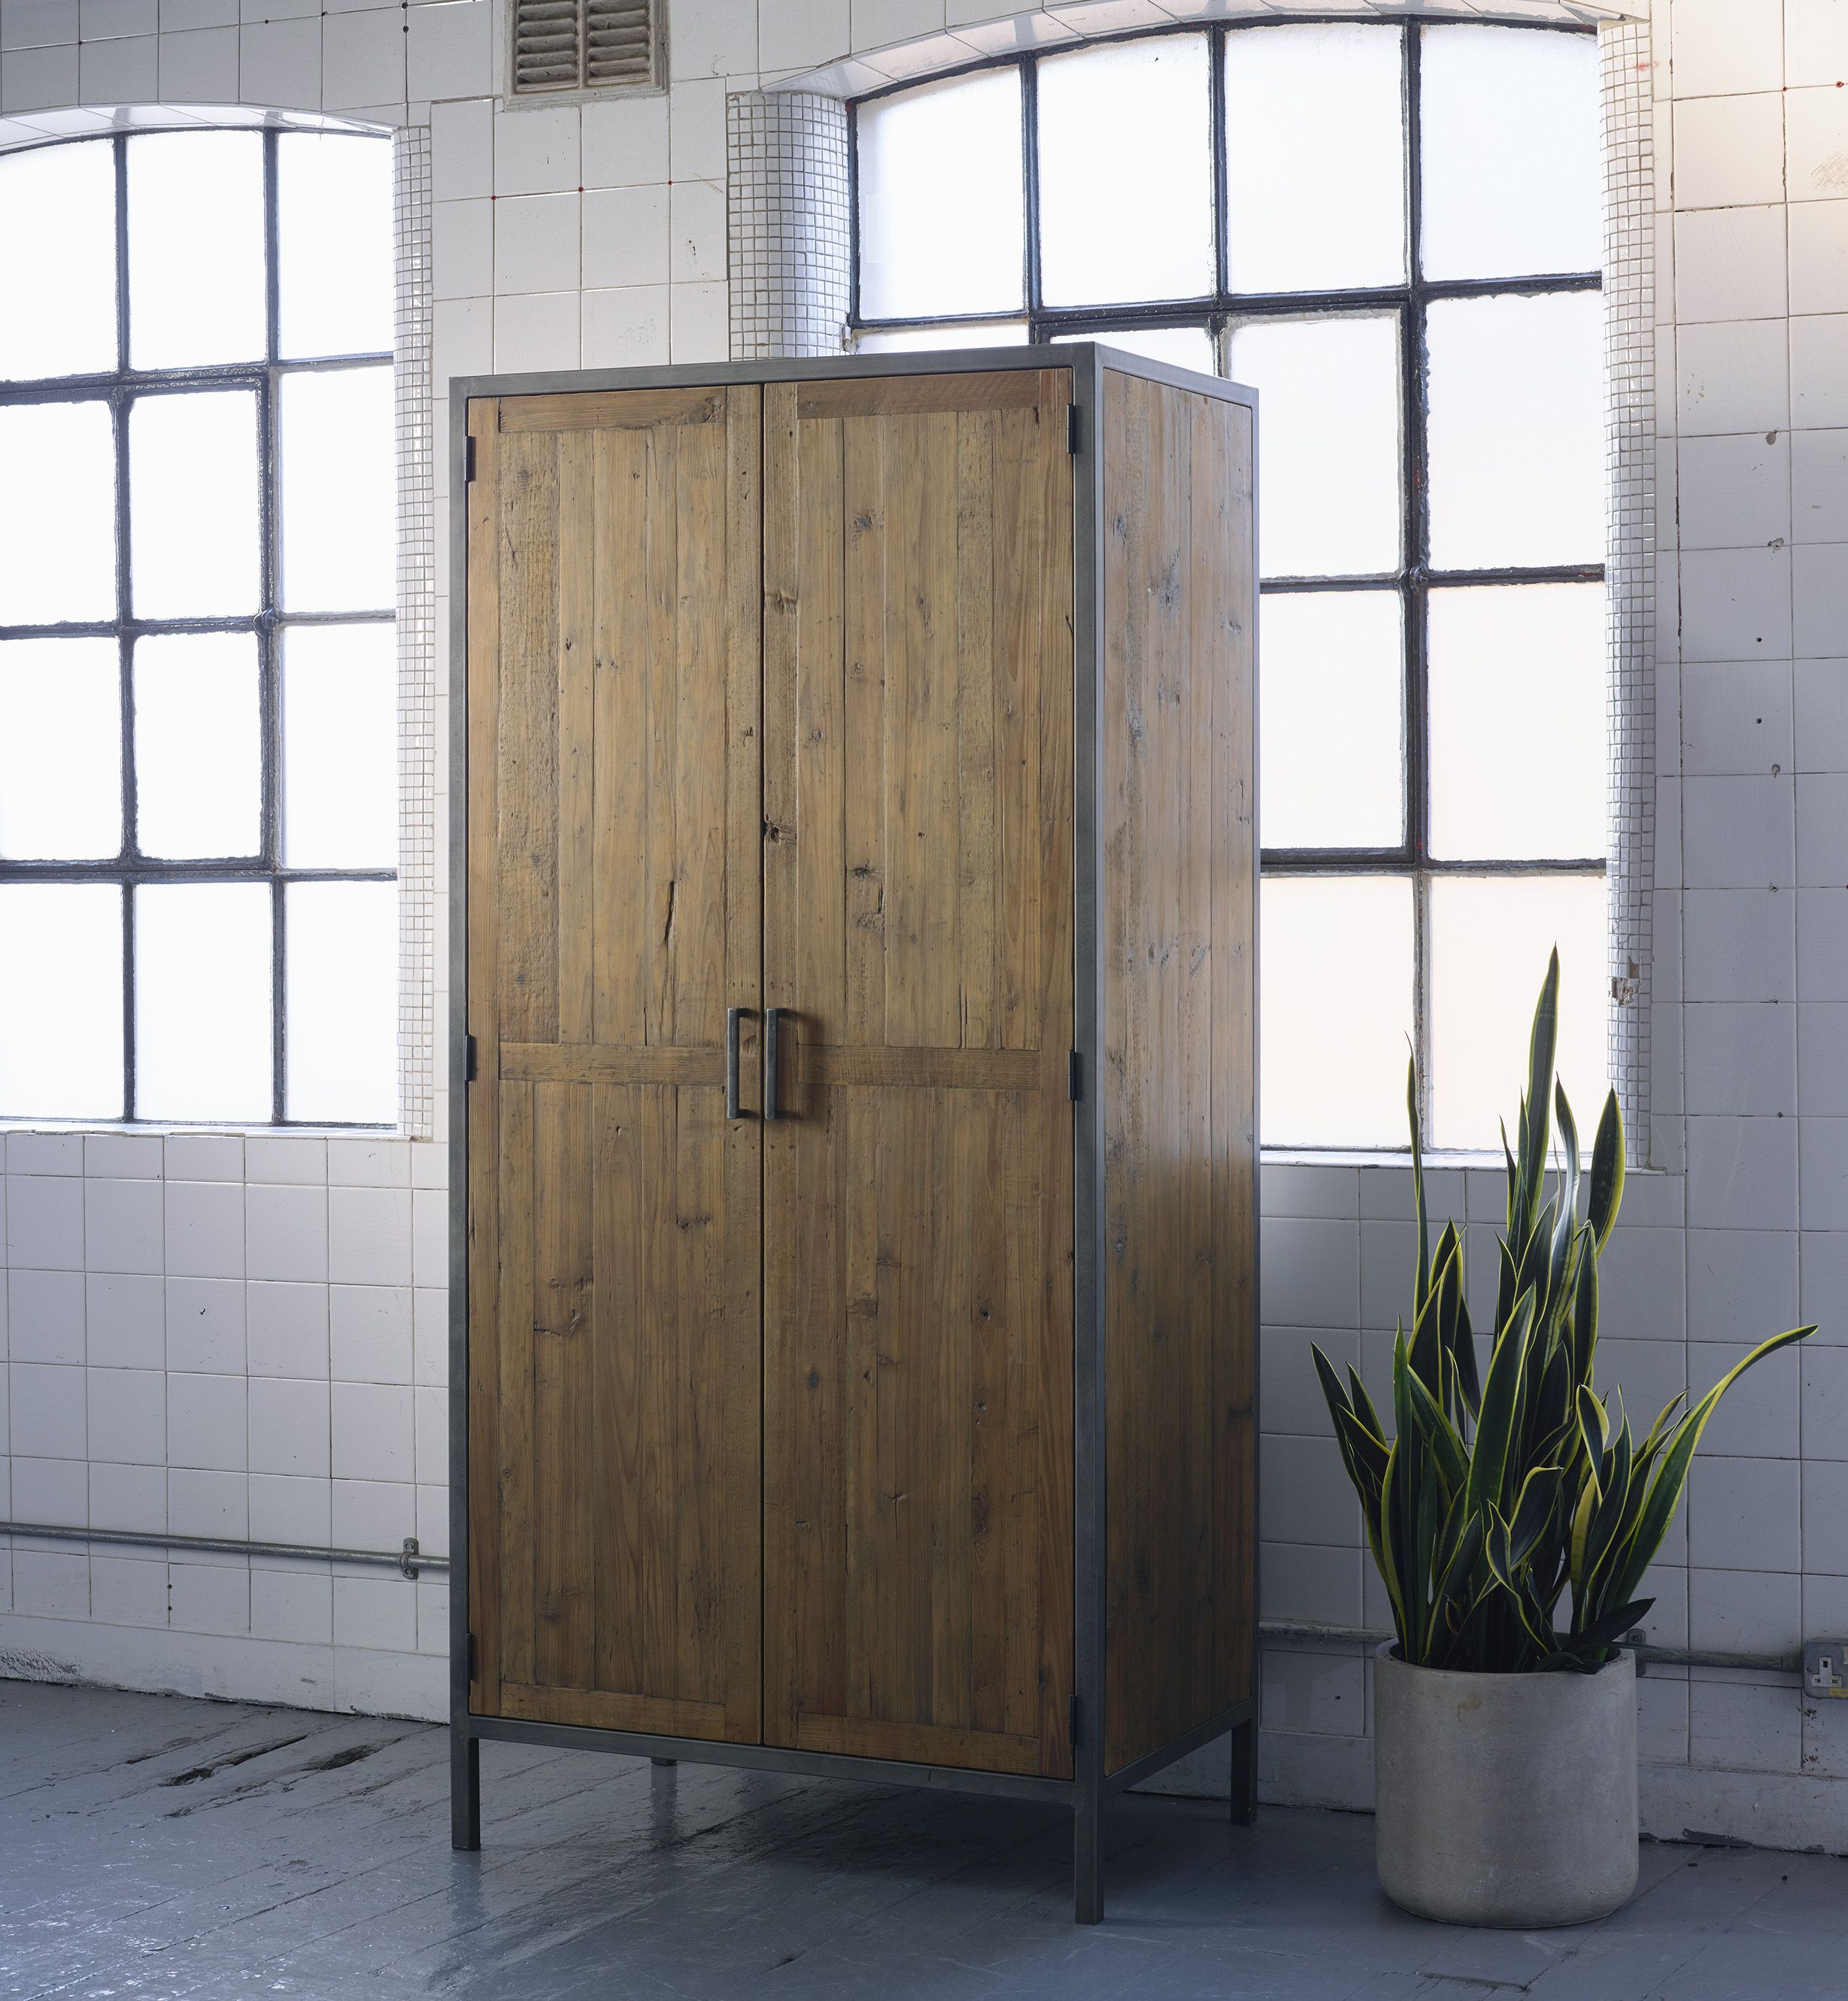 Baxter Square Wardrobe Industrial Warehouse Style Bedroom Furniture From Lombok